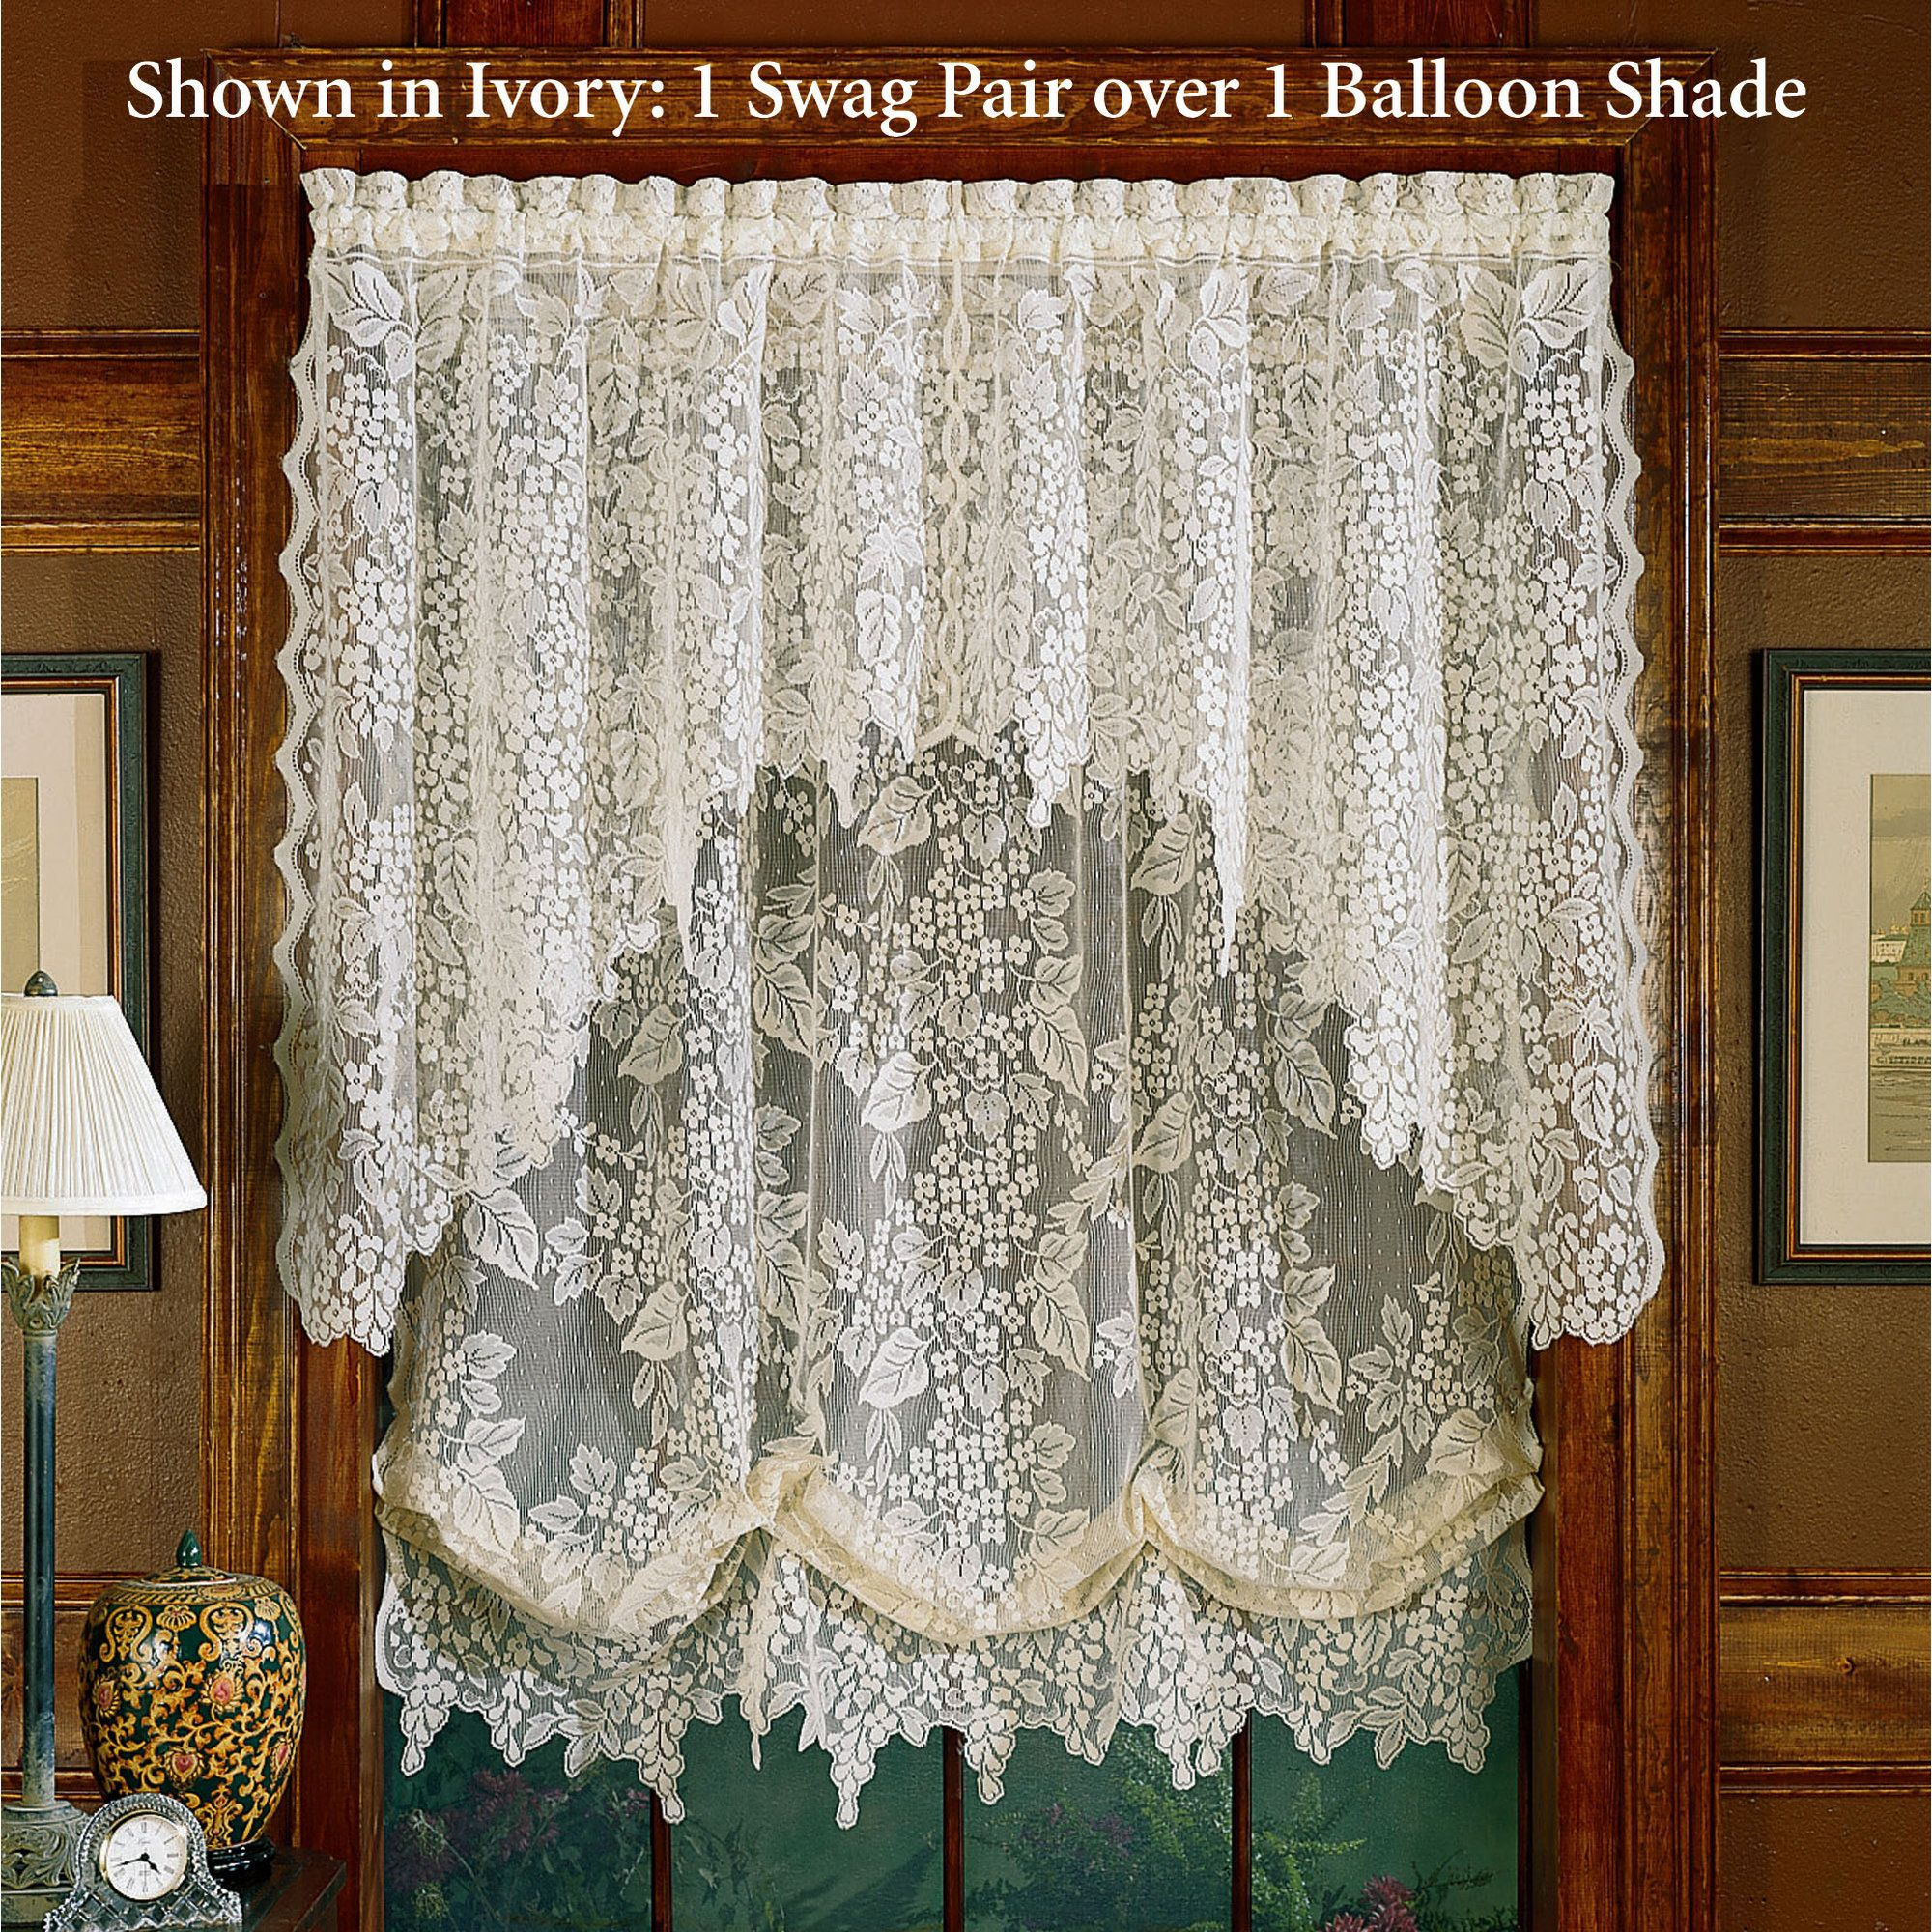 x hathaway p tailored v curtains shade treatment for semi bedroom curtain balloon panel window sheer